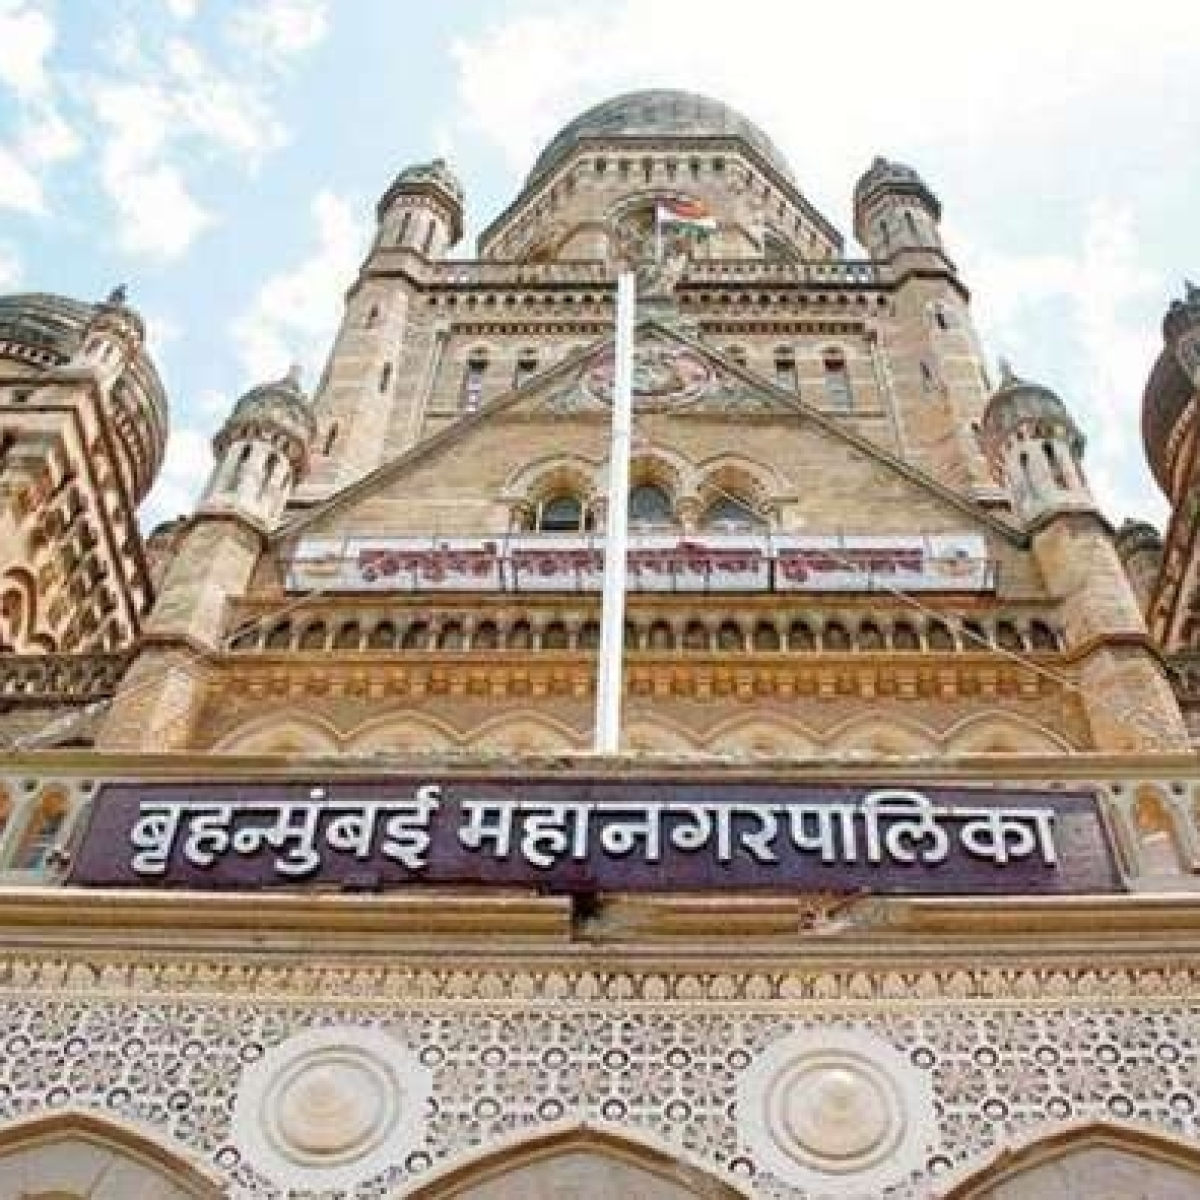 Coronavirus in Mumbai: BMC to set up 'Ward War Room' to decentralise bed management